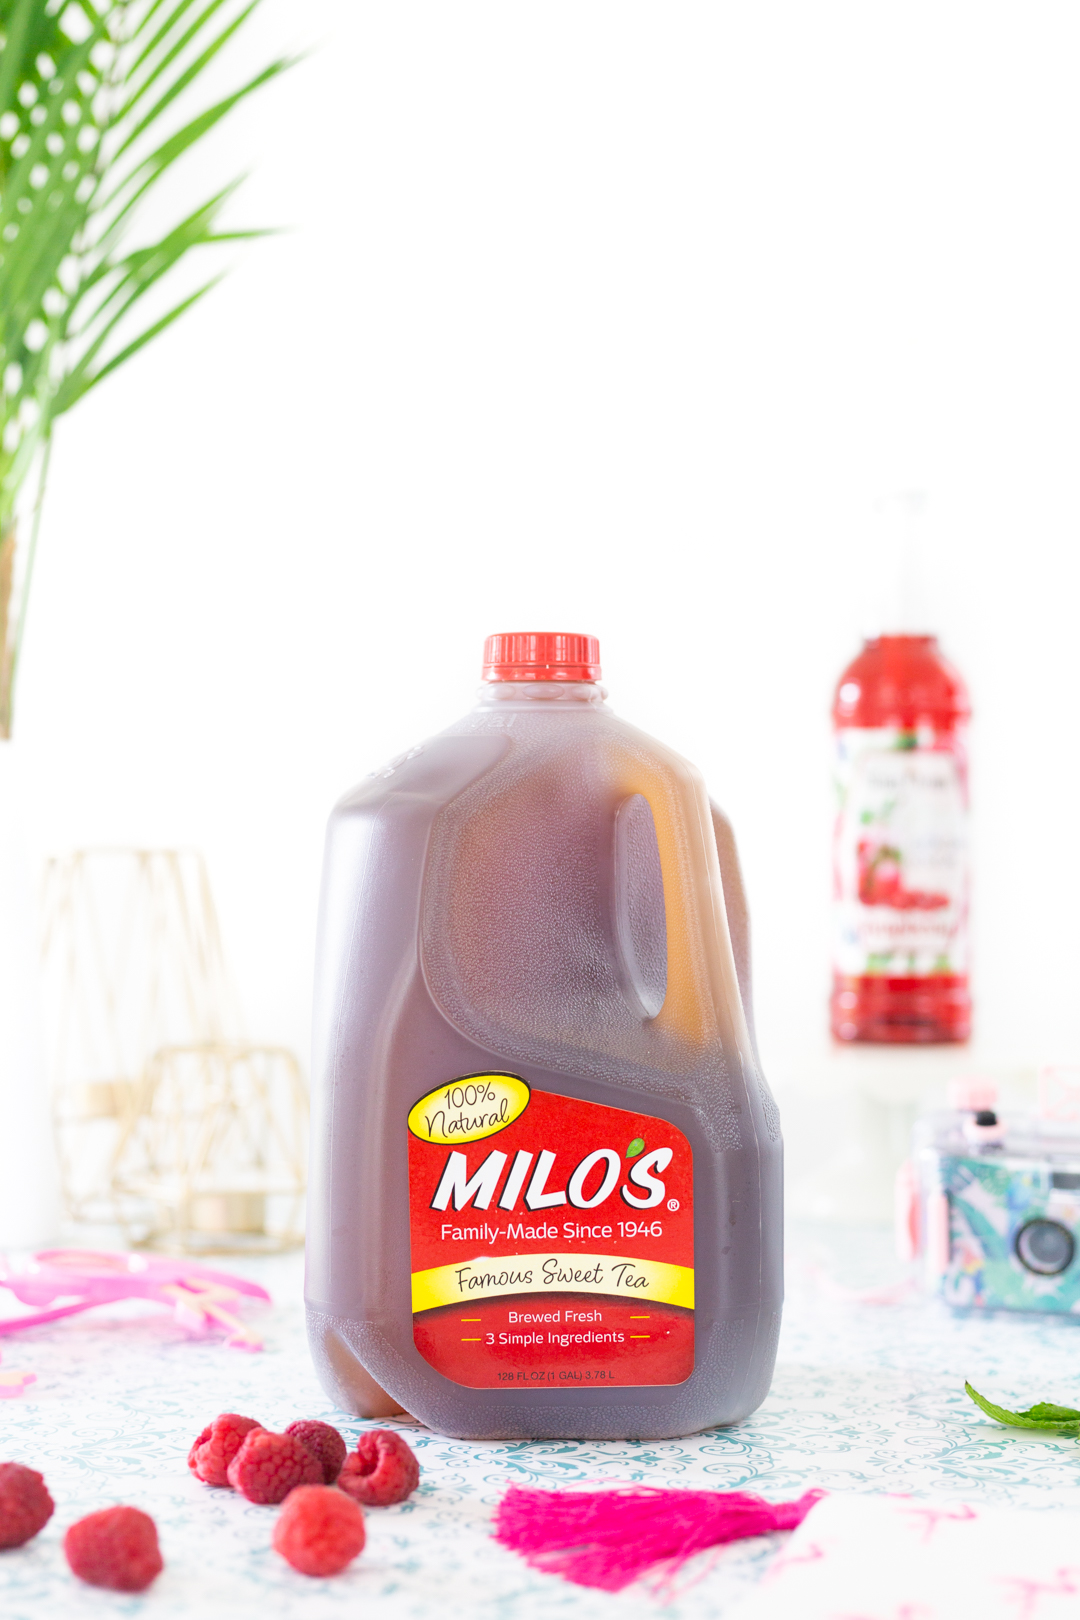 Jug of Milo's Iced Tea